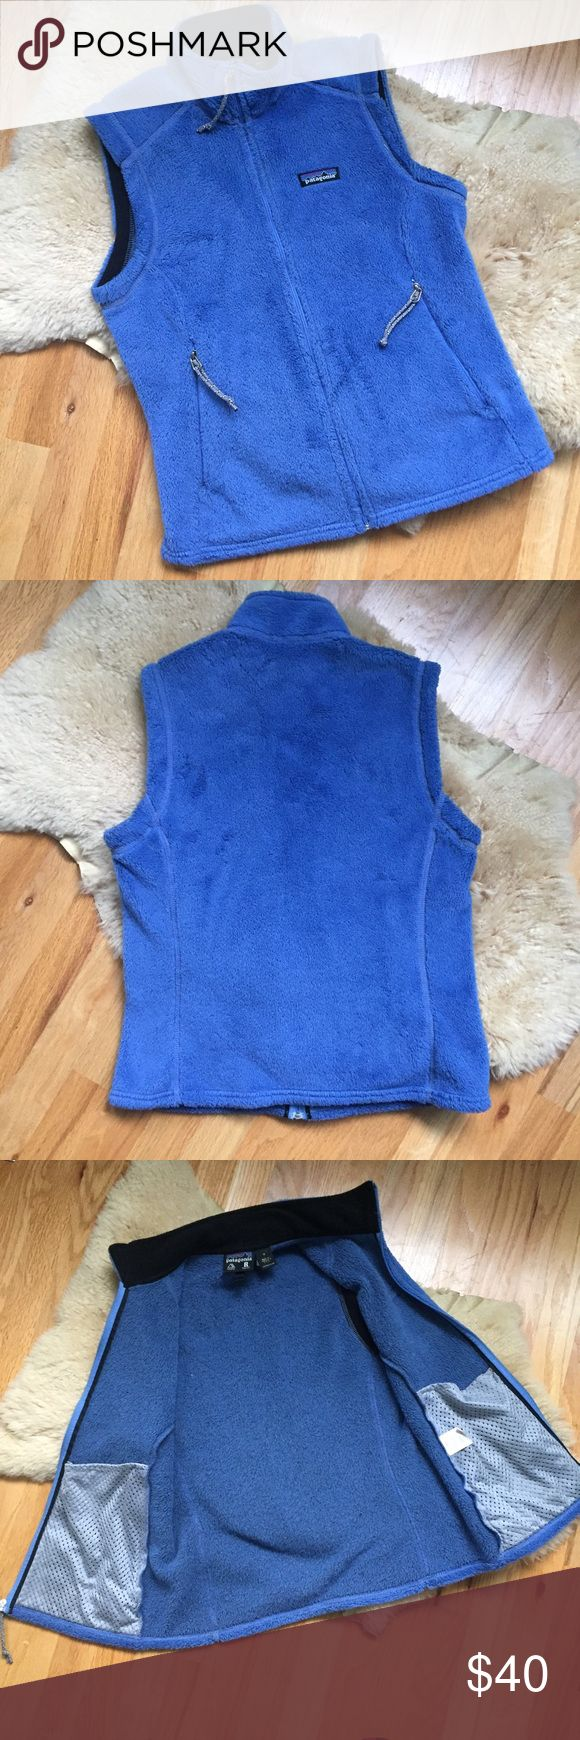 Patagonia fleece vest Warm blue fleece vest from Patagonia  . In very good used condition.  Has light matting of the fleece at the zipper Patagonia Jackets & Coats Vests